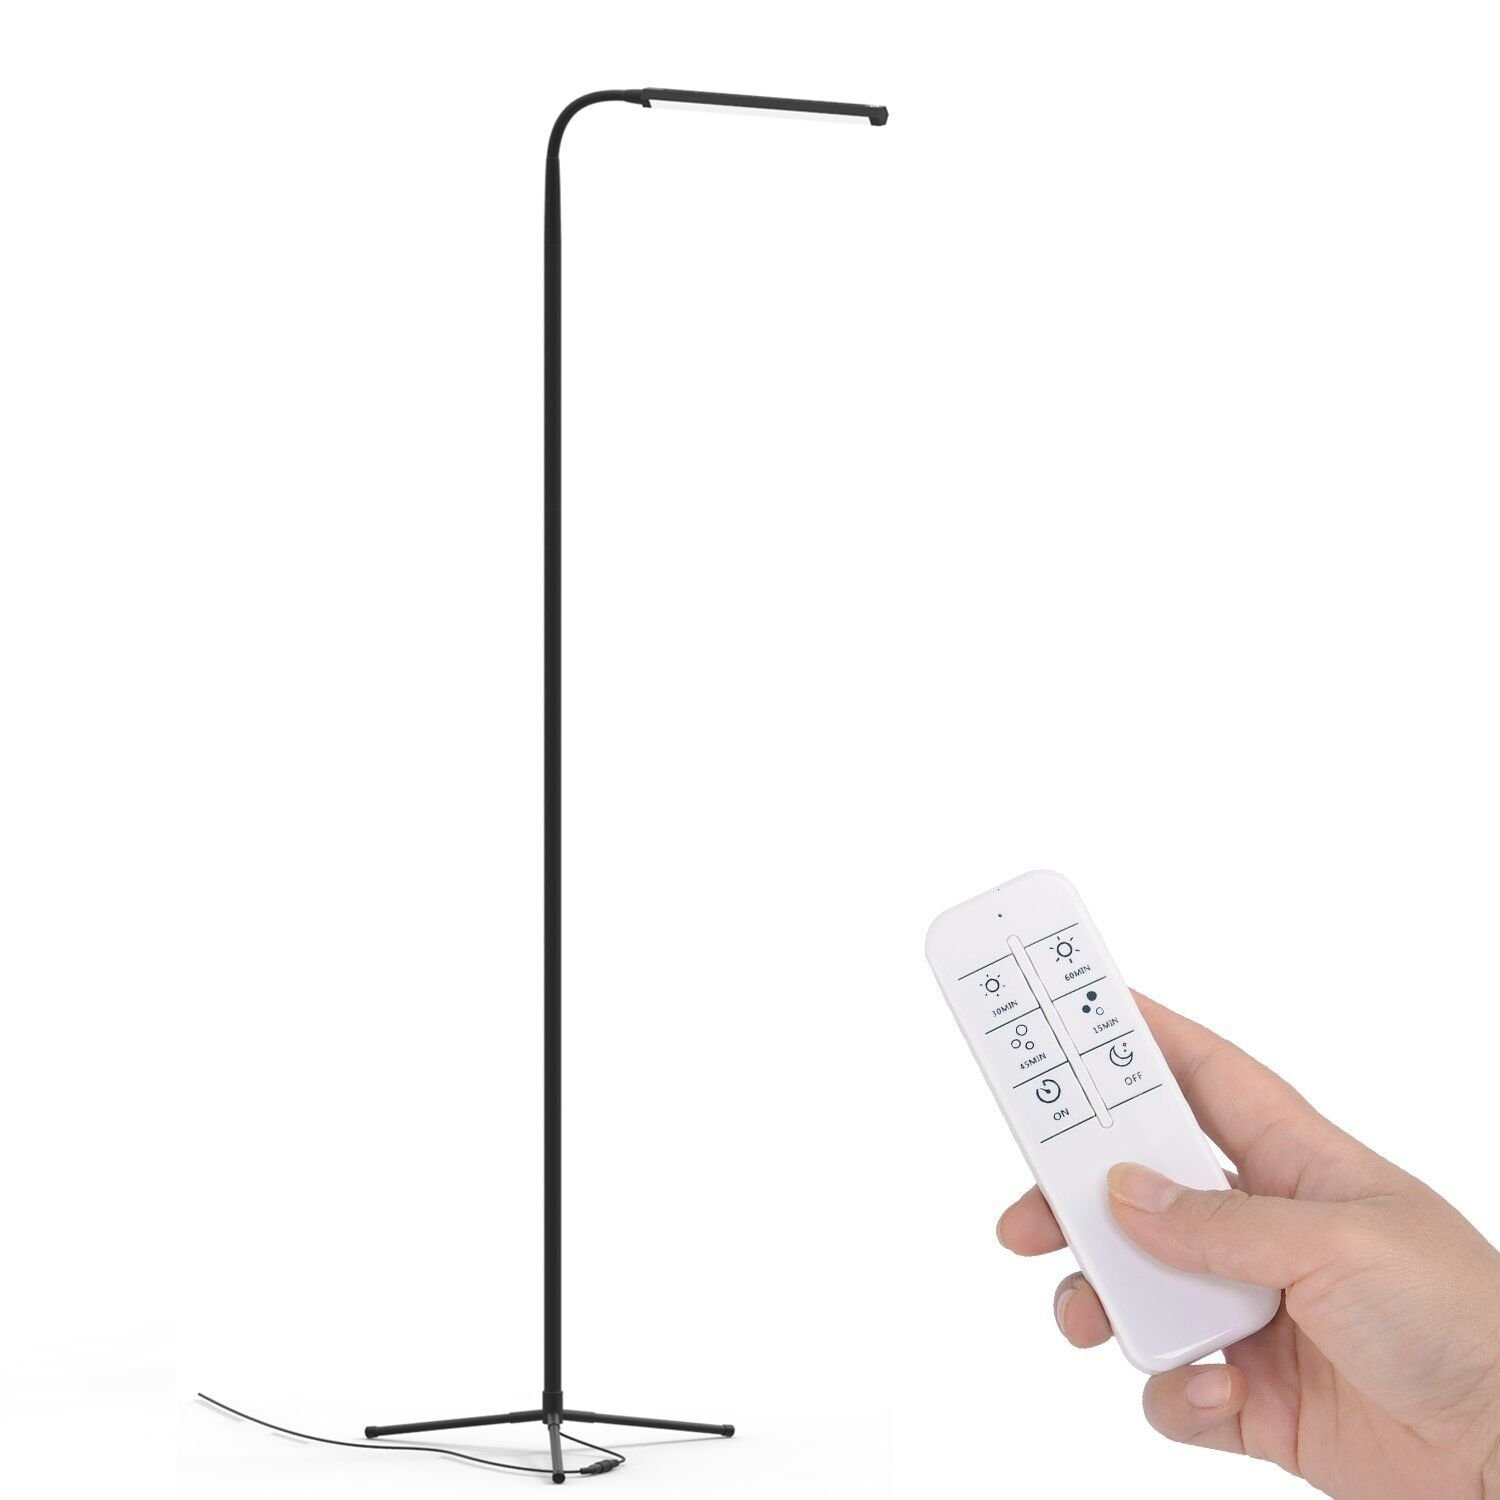 Ottlite t92bnt vero floor lamp brushed nickel floor lamps youkoyi f9 modern dimmable touch led floor lamp for living room bedroom with remote control geotapseo Image collections